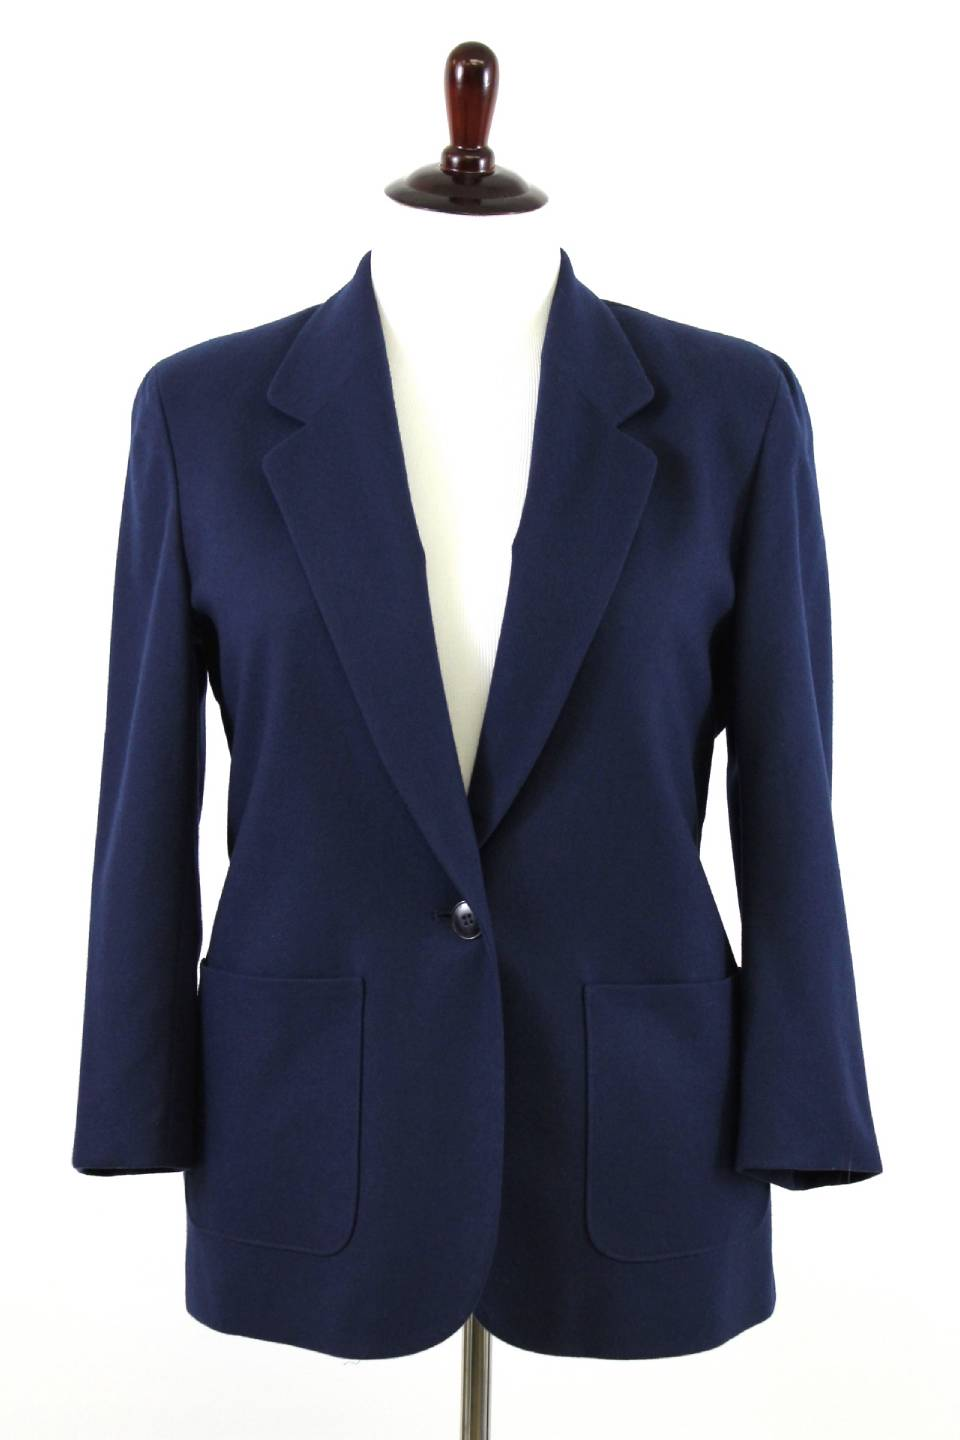 Find great deals on eBay for womens navy wool blazer. Shop with confidence.